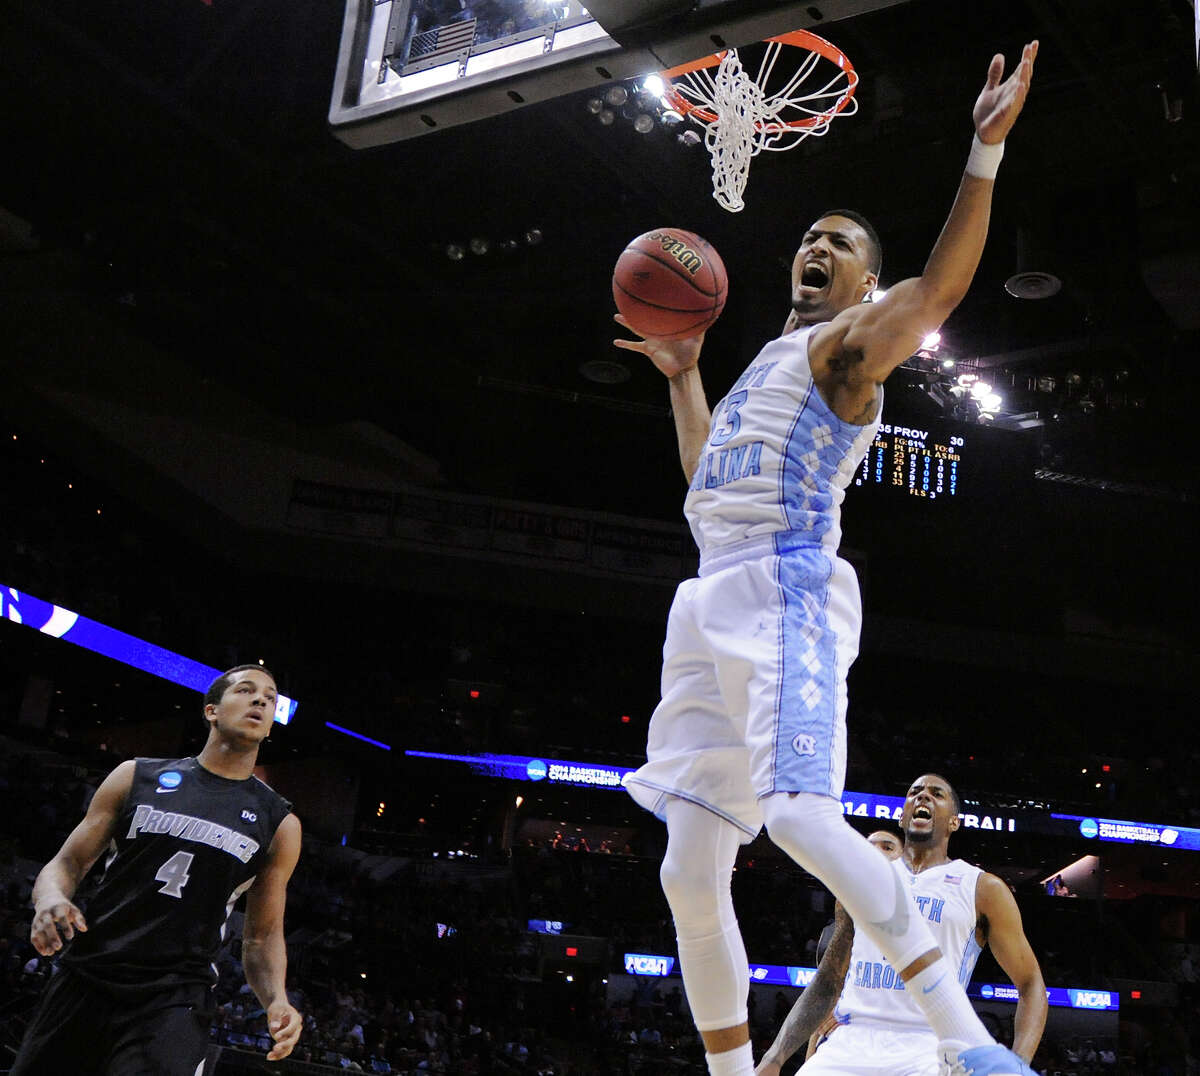 North Carolina's J.P. Tokoto (13) reacts after a dunk as Providence's Josh Fortune (04) looks on during first half action of their second round 2014 NCAA Division I Men's Basketball Championship held Friday March 21, 2014 at the AT&T Center.